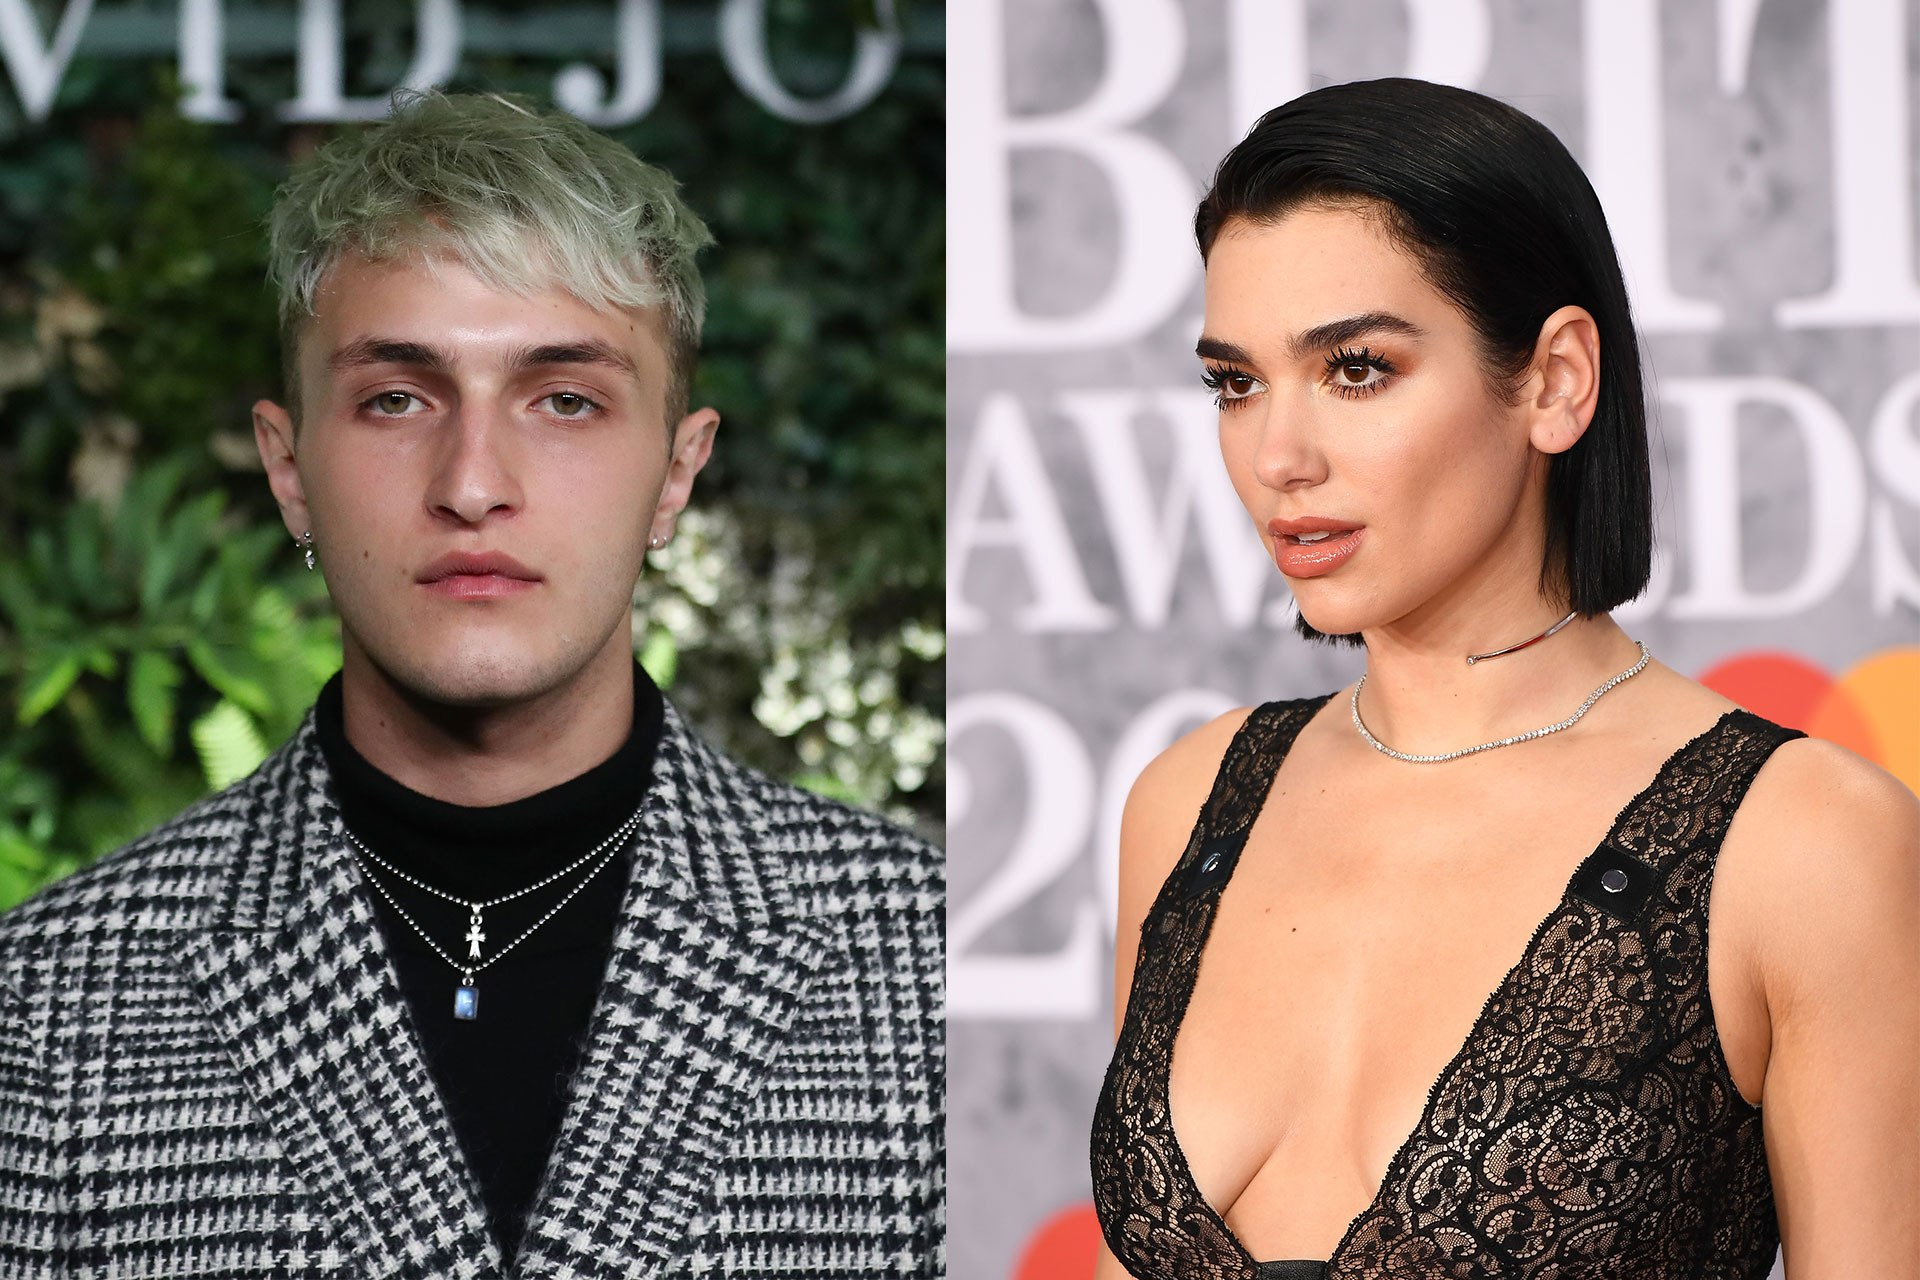 Dua Lipa is reportedly dating Gigi and Bella Hadid's younger brother, Anwar Hadid